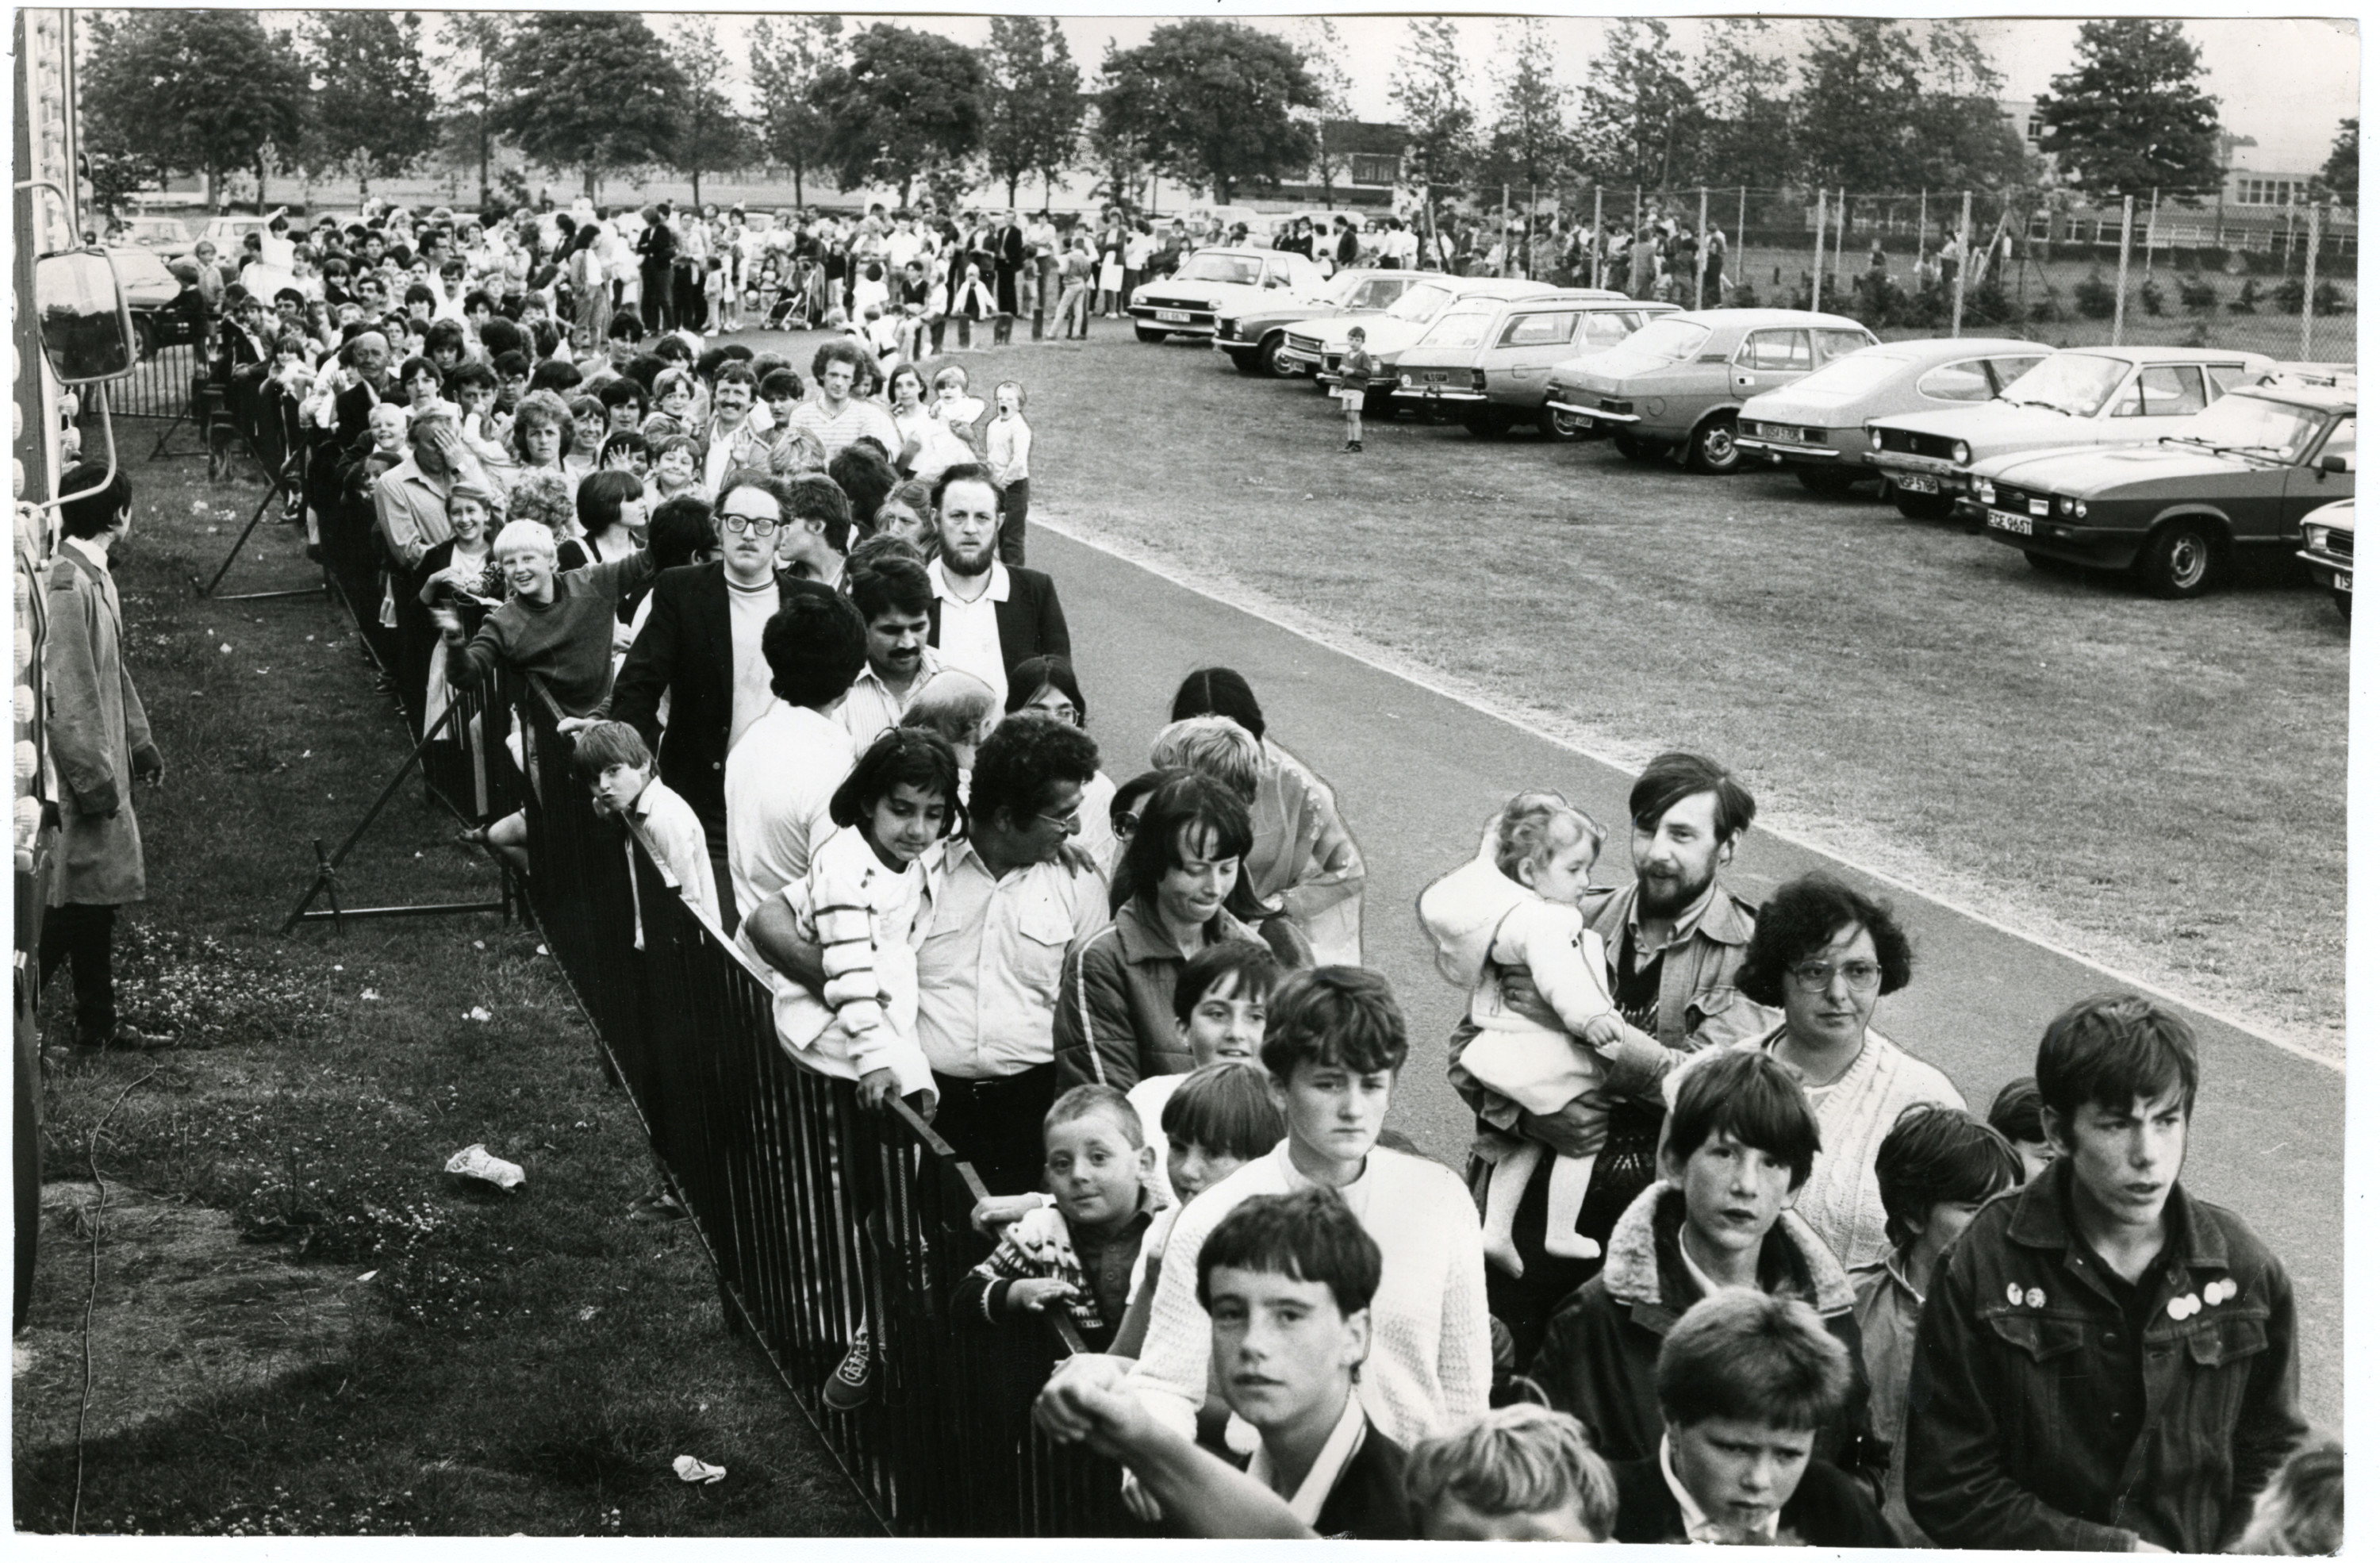 Queue for Caird Park Circus. Photograph showing the large queue for the Austen Brothers Circus being held in Caird Park, Dundee. 30 July 1984. H262 1984-07-30 Queue for Caird Park Circus (C)DCT Dundonian. Used in Courier L/ED 31 July 1984.